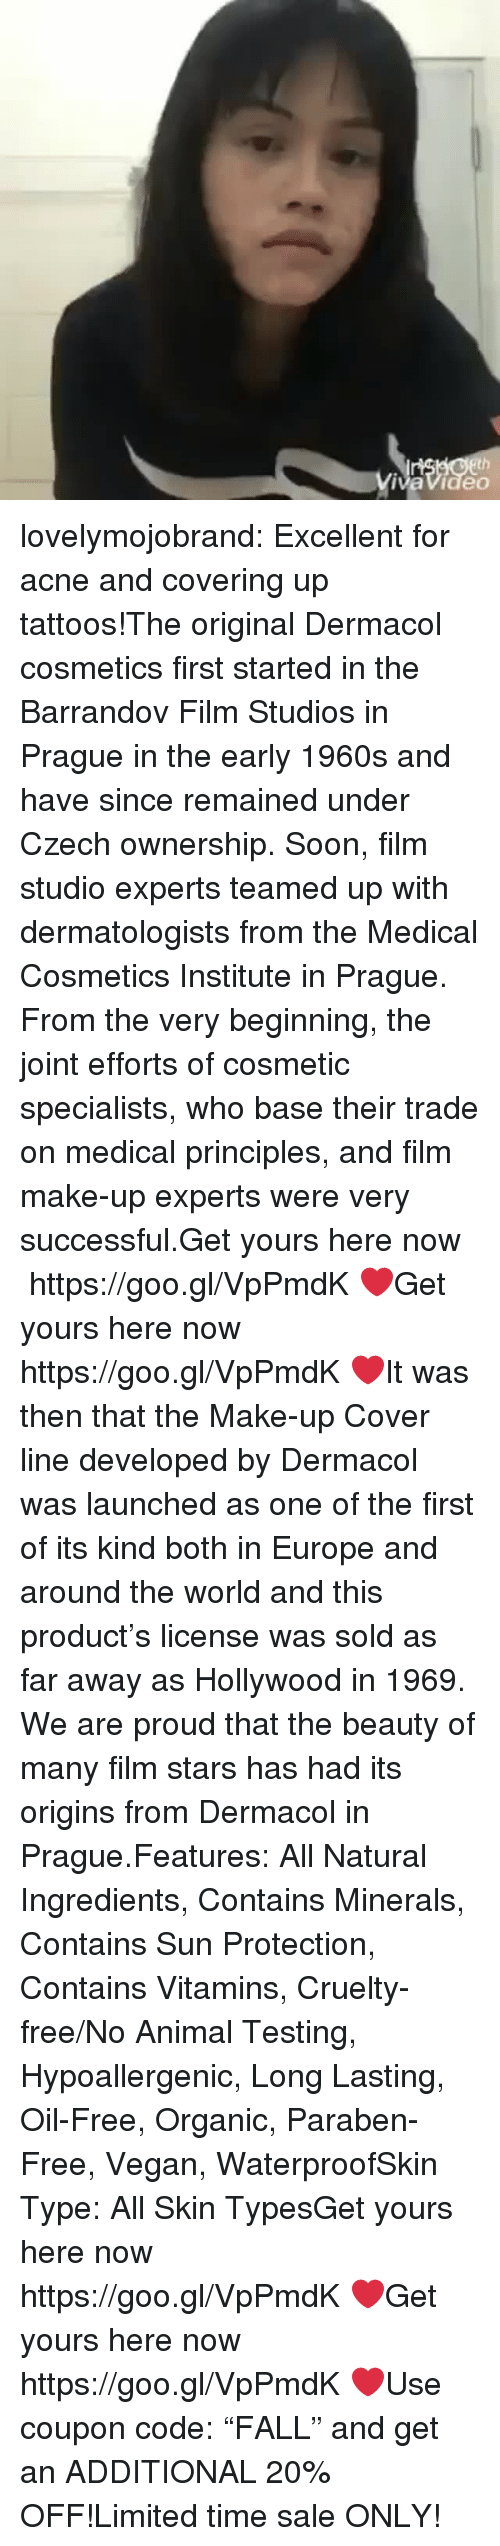 """minerals: vaVideo lovelymojobrand:  Excellent for acne and covering up tattoos!The original Dermacol cosmetics first started in the Barrandov Film Studios in Prague in the early 1960s and have since remained under Czech ownership. Soon, film studio experts teamed up with dermatologists from the Medical Cosmetics Institute in Prague. From the very beginning, the joint efforts of cosmetic specialists, who base their trade on medical principles, and film make-up experts were very successful.Get yours here now https://goo.gl/VpPmdK❤Get yours here now  https://goo.gl/VpPmdK❤It was then that the Make-up Cover line developed by Dermacol was launched as one of the first of its kind both in Europe and around the world and this product's license was sold as far away as Hollywood in 1969. We are proud that the beauty of many film stars has had its origins from Dermacol in Prague.Features: All Natural Ingredients, Contains Minerals, Contains Sun Protection, Contains Vitamins, Cruelty-free/No Animal Testing, Hypoallergenic, Long Lasting, Oil-Free, Organic, Paraben-Free, Vegan, WaterproofSkin Type: All Skin TypesGet yours here now  https://goo.gl/VpPmdK❤Get yours here now  https://goo.gl/VpPmdK❤Use coupon code:""""FALL"""" and get an ADDITIONAL 20% OFF!Limited time sale ONLY!"""